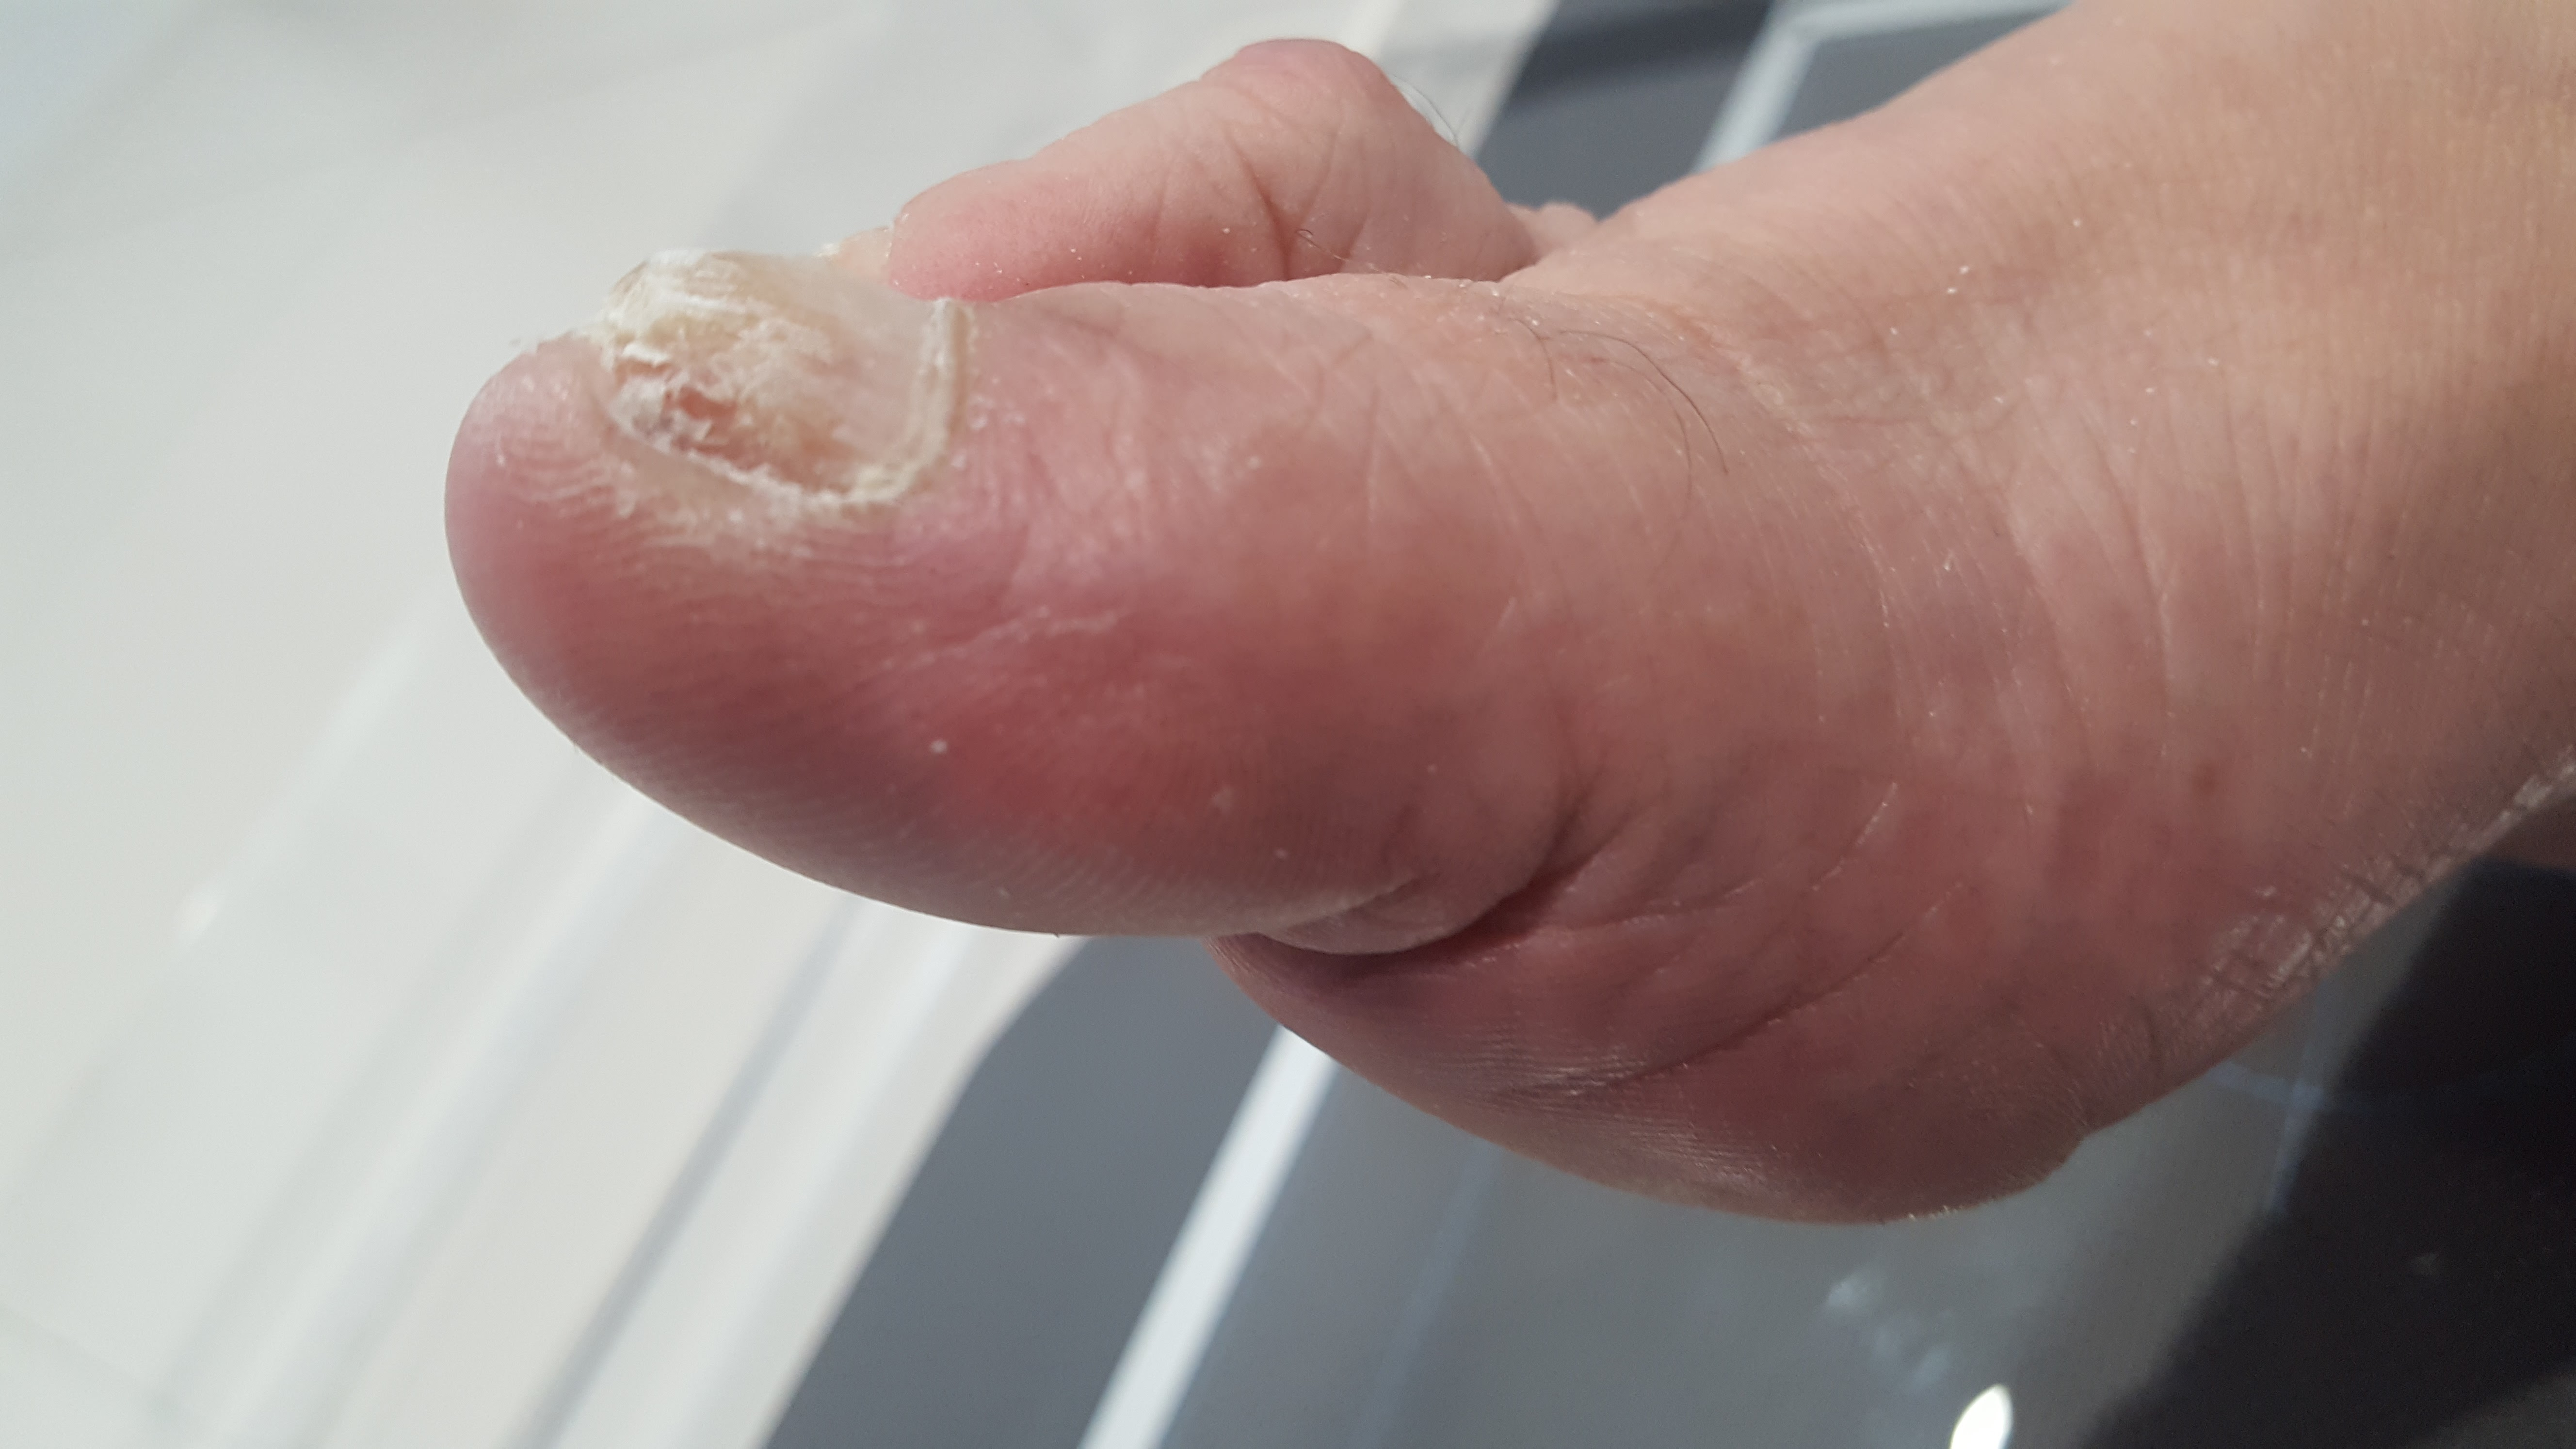 foot wart with hole